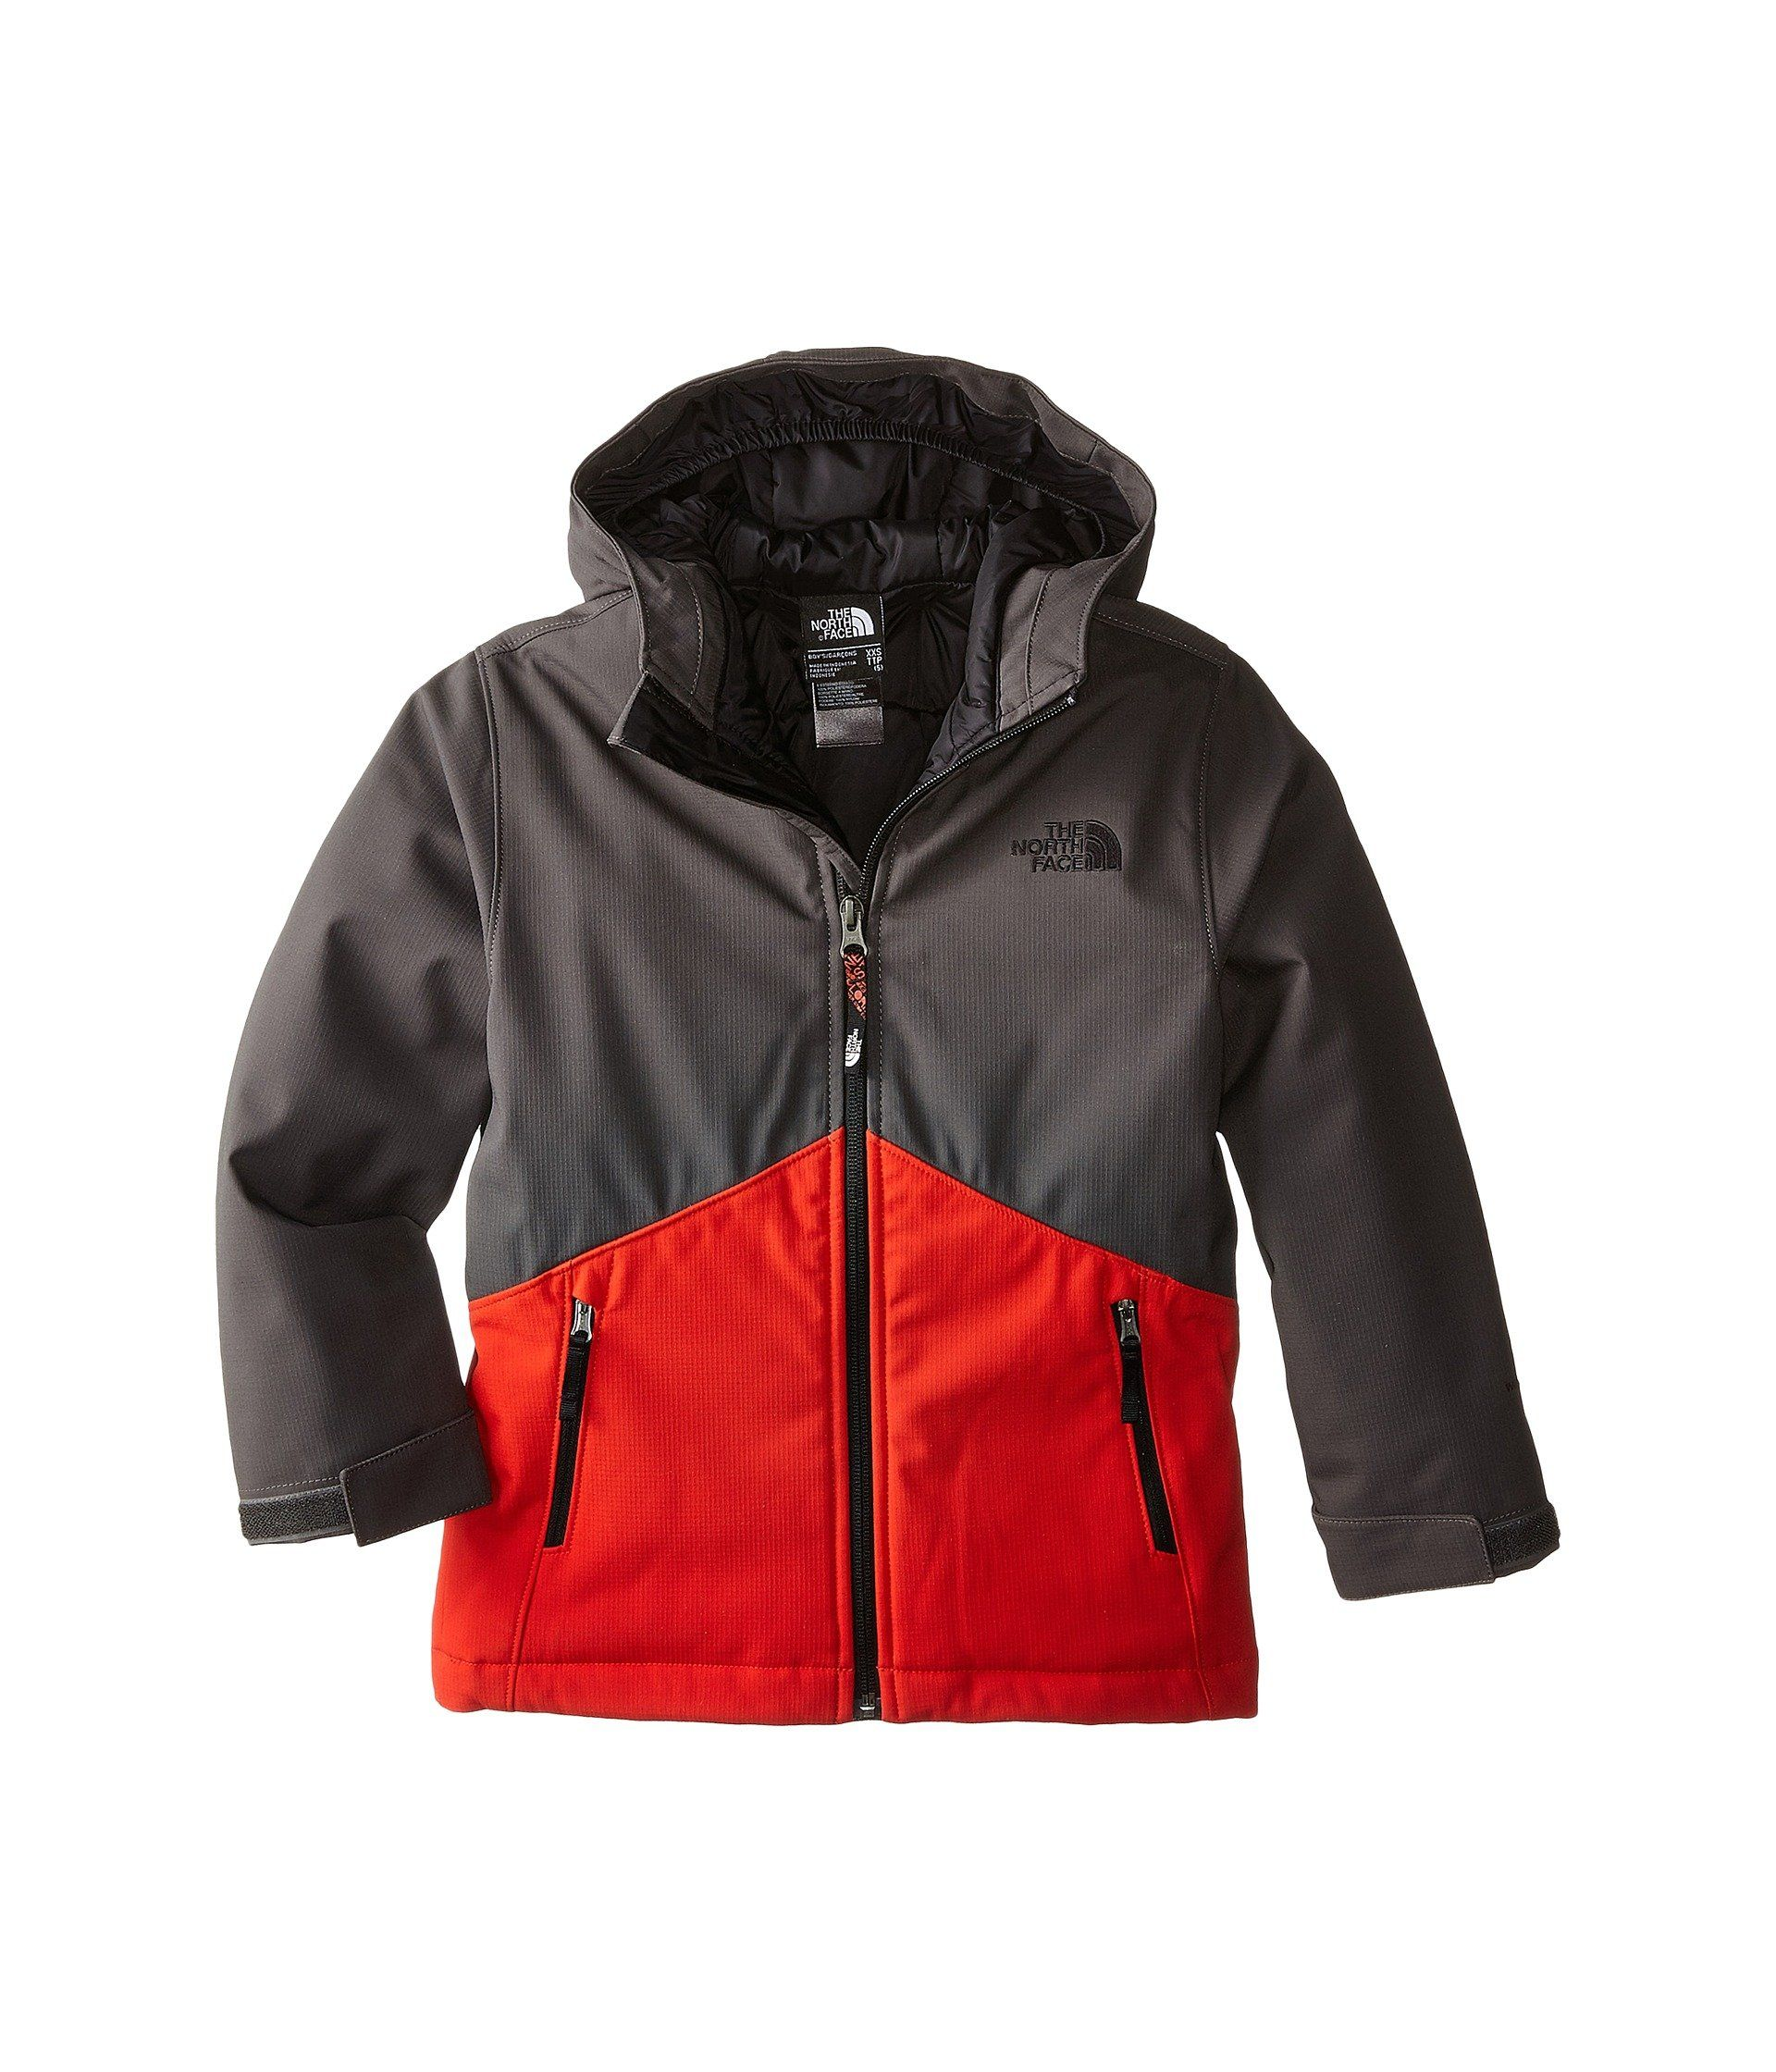 05eb25cb6e89 THE NORTH FACE APEX ELEVATION YOUTH BOYS INSULATED JACKET (XS (6 ...